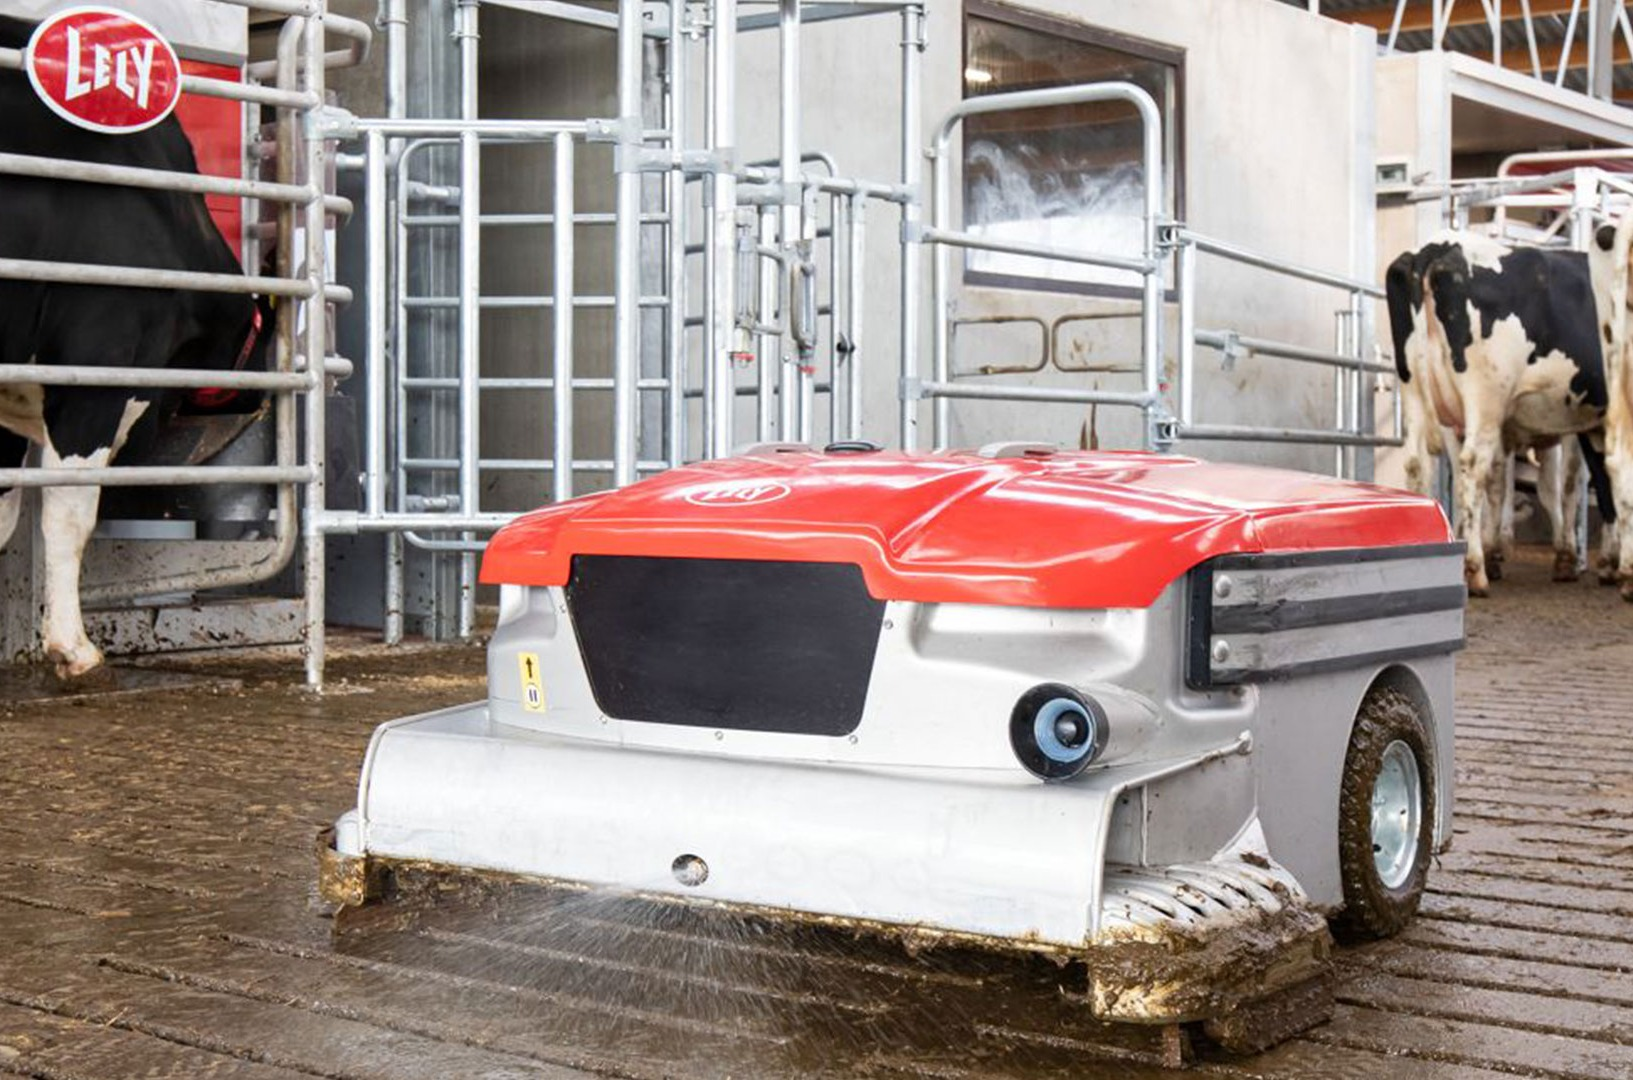 Lely Discovery 120 Collector mobile barn cleaner